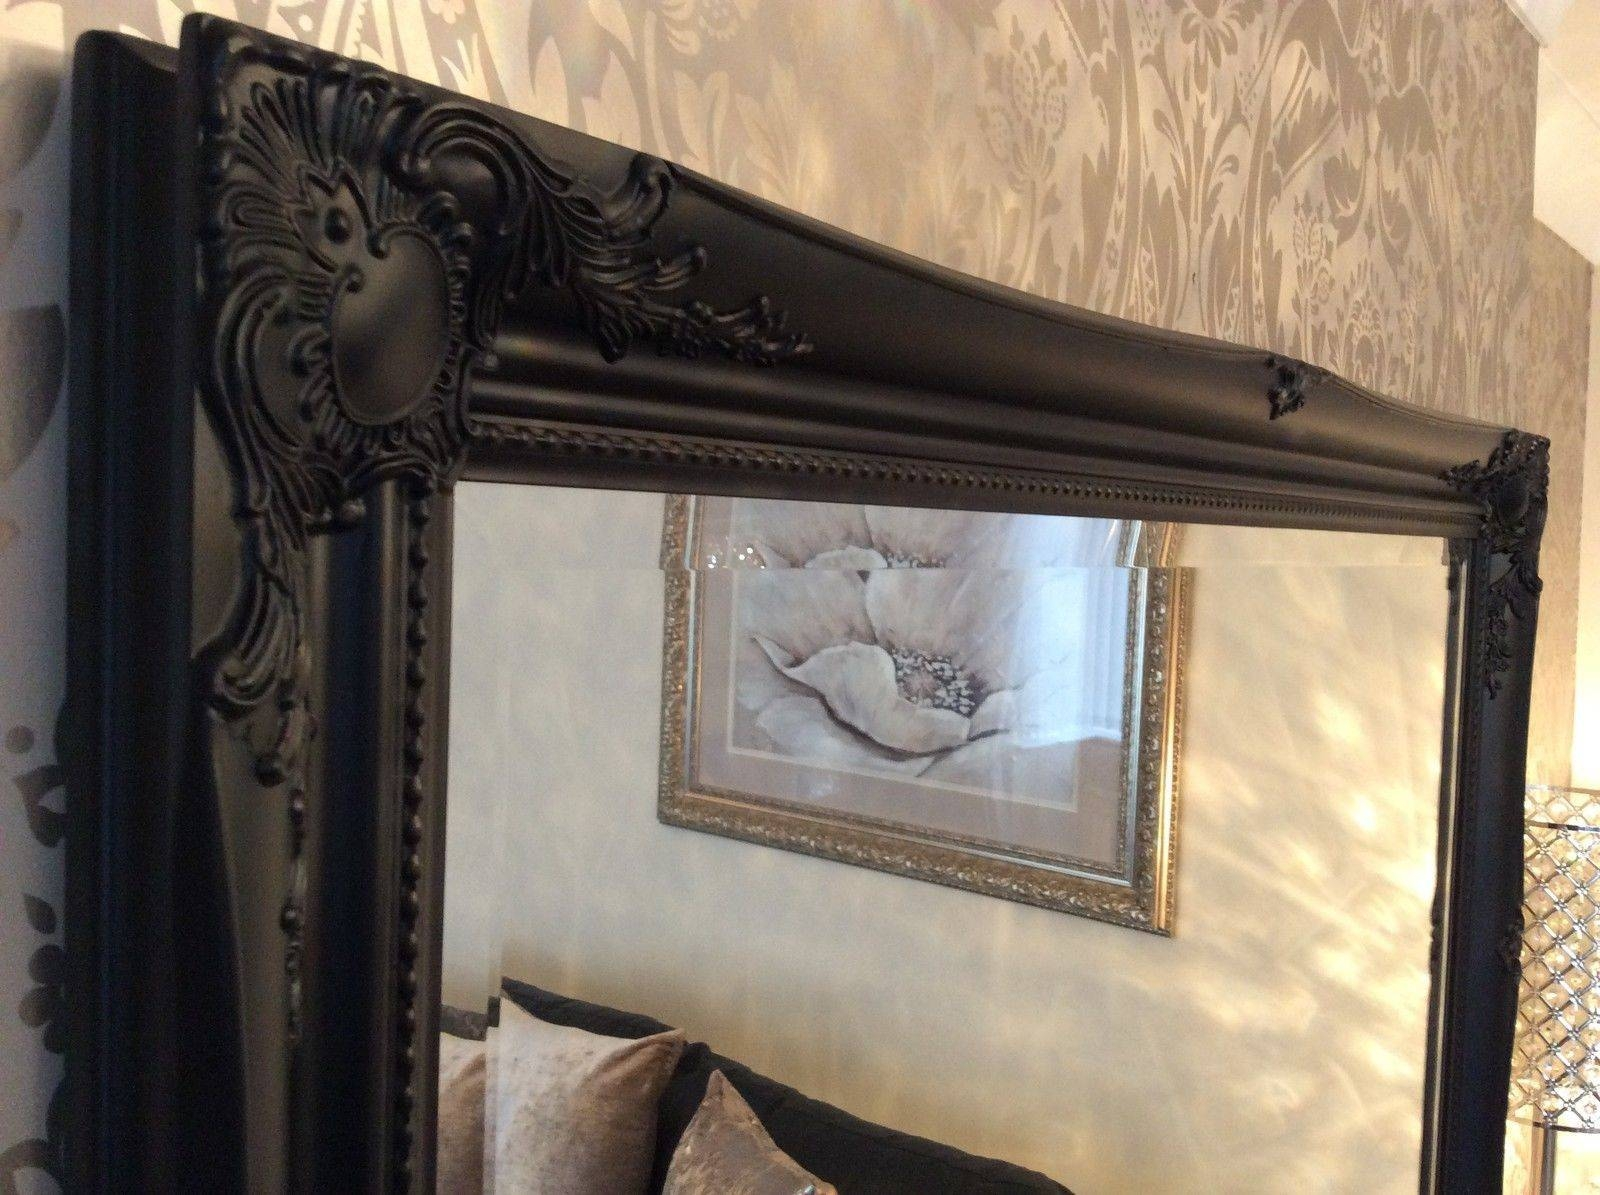 Black Shabby Chic Framed Ornate Overmantle Wall Mirror – Range Of Throughout Black Shabby Chic Mirrors (View 2 of 25)